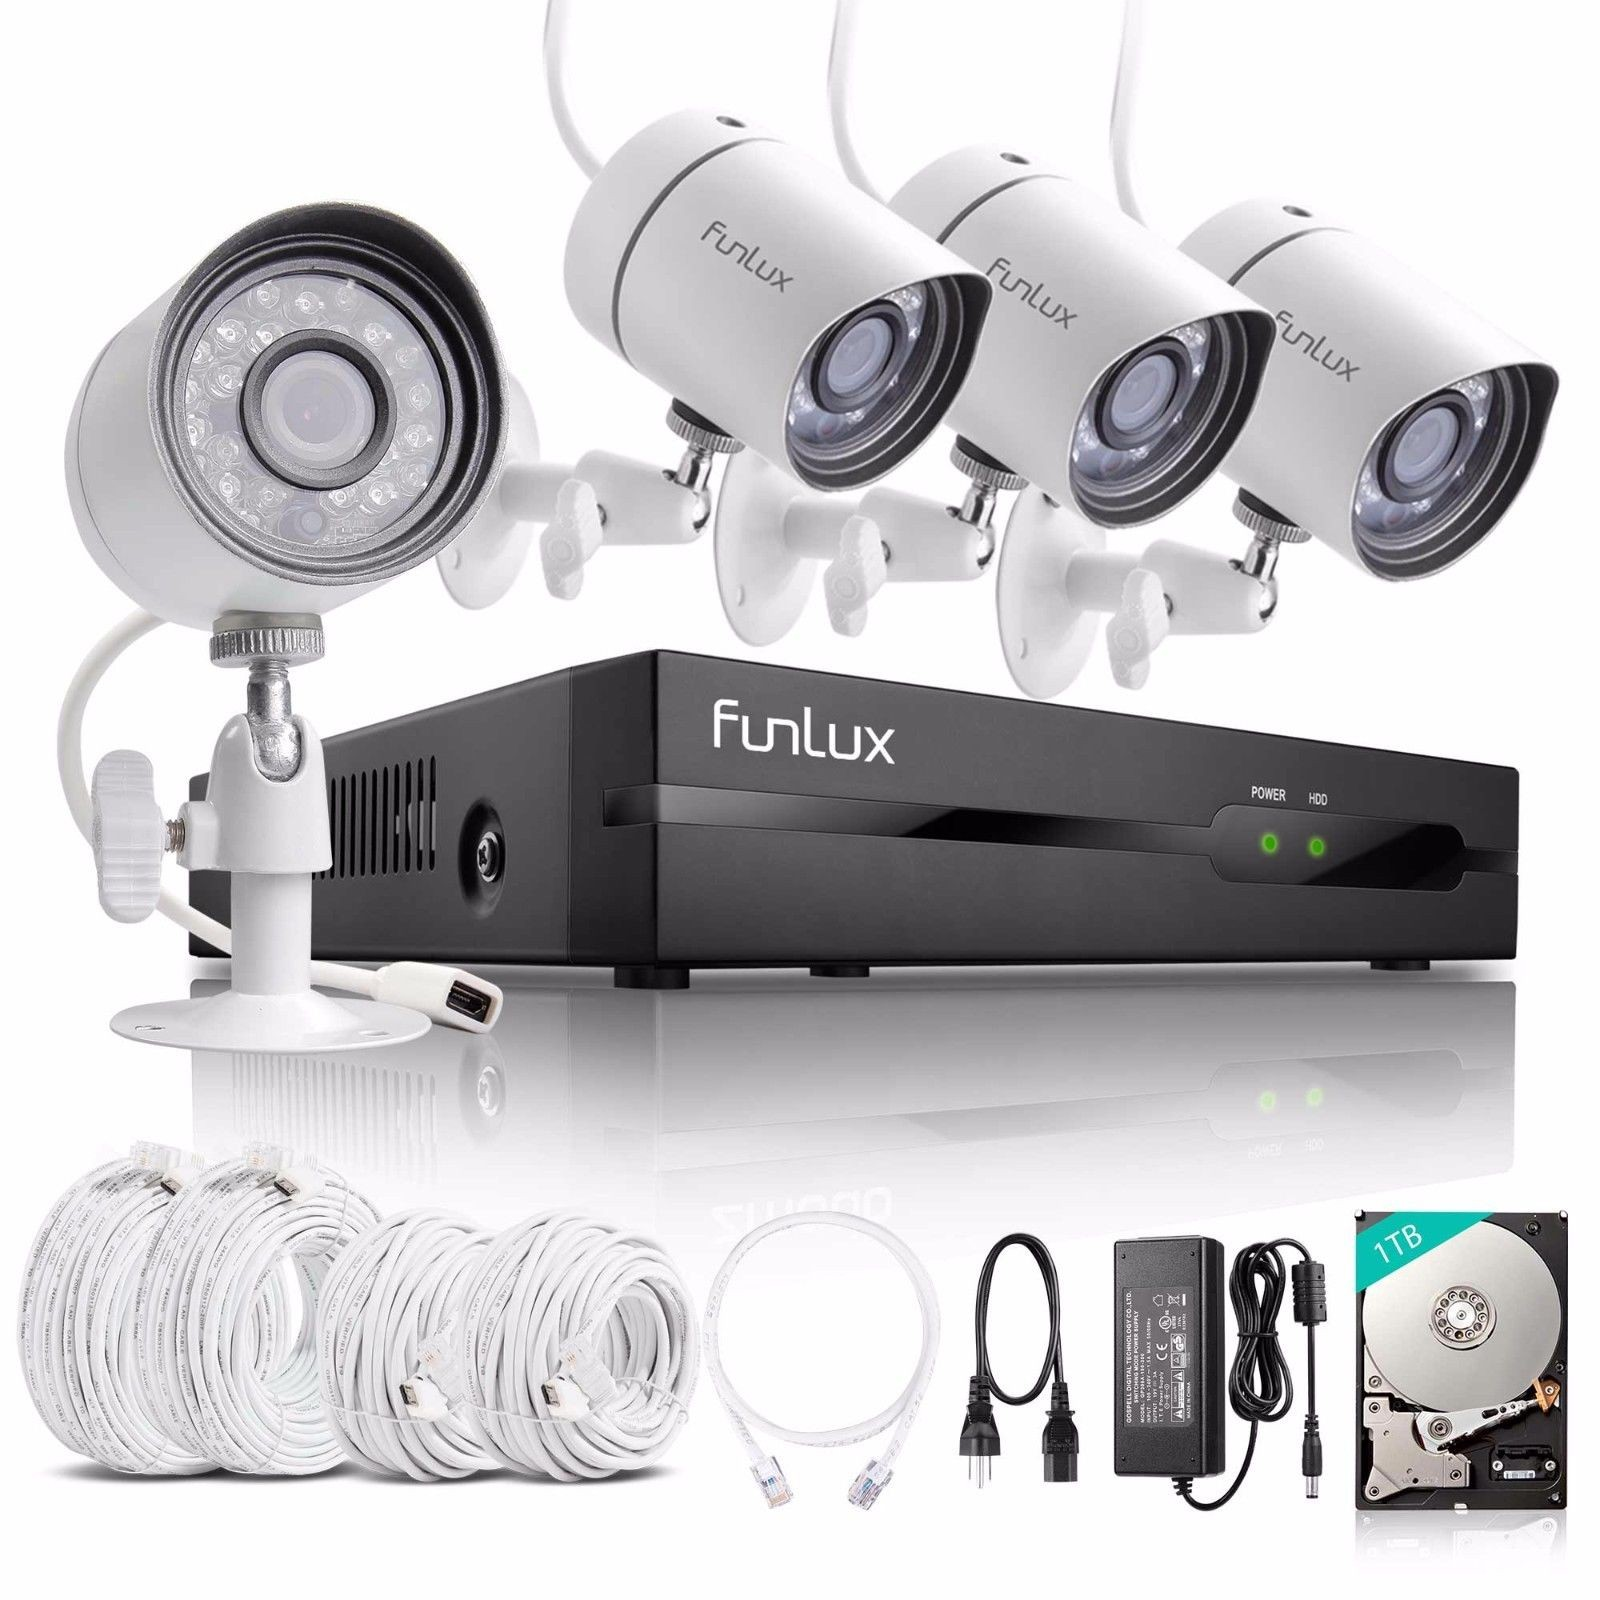 Funlux Official Website - Security Camera System, IP Camera